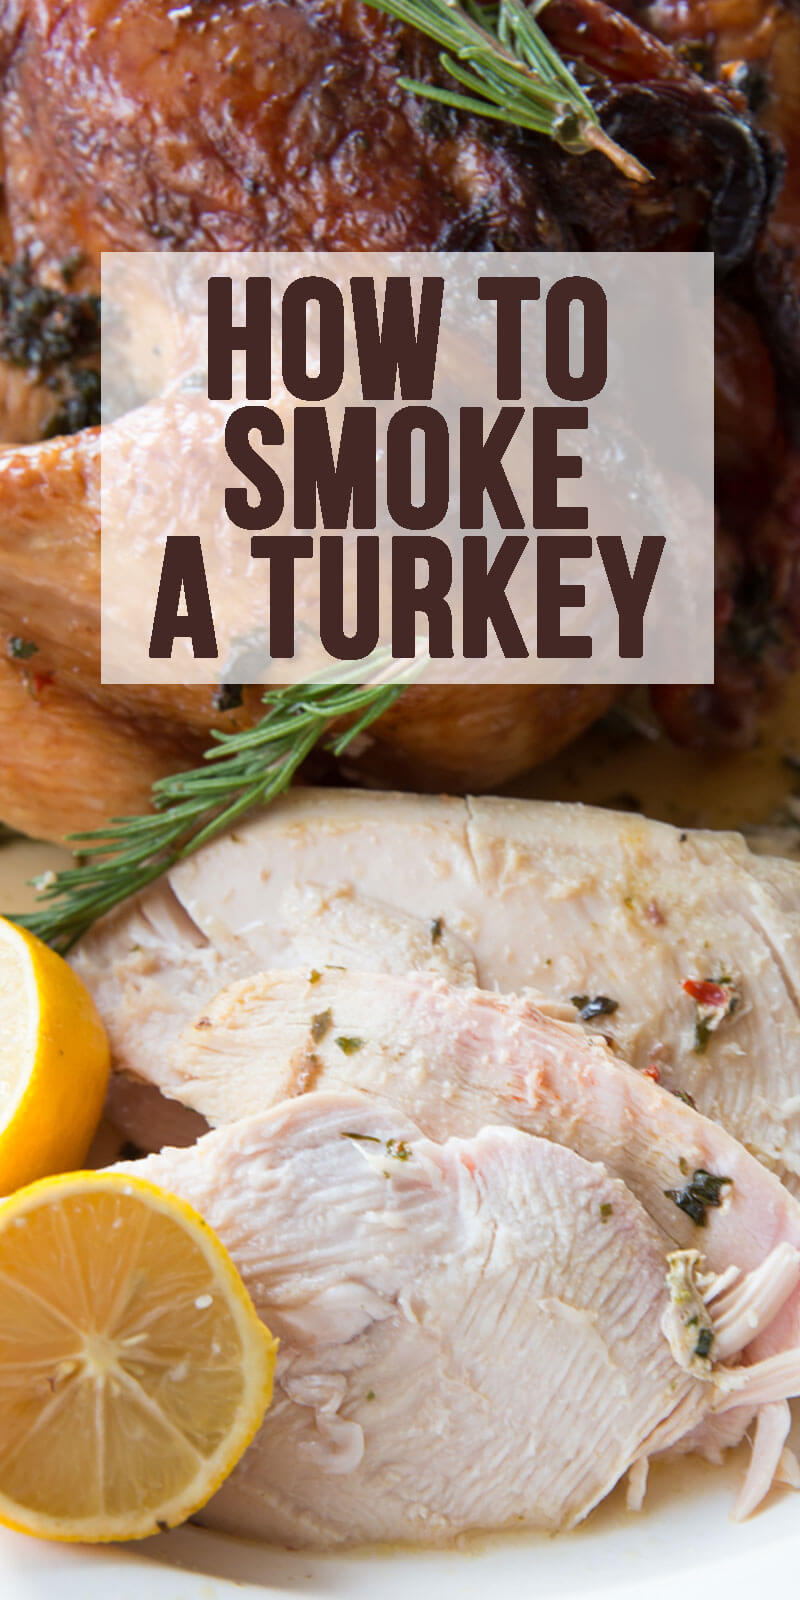 Smoking a Turkey: The perfect way to create juicy, flavorful, mouthwatering turkey for Thanksgiving, or any other time of year! This is hands down the best turkey I have ever had.